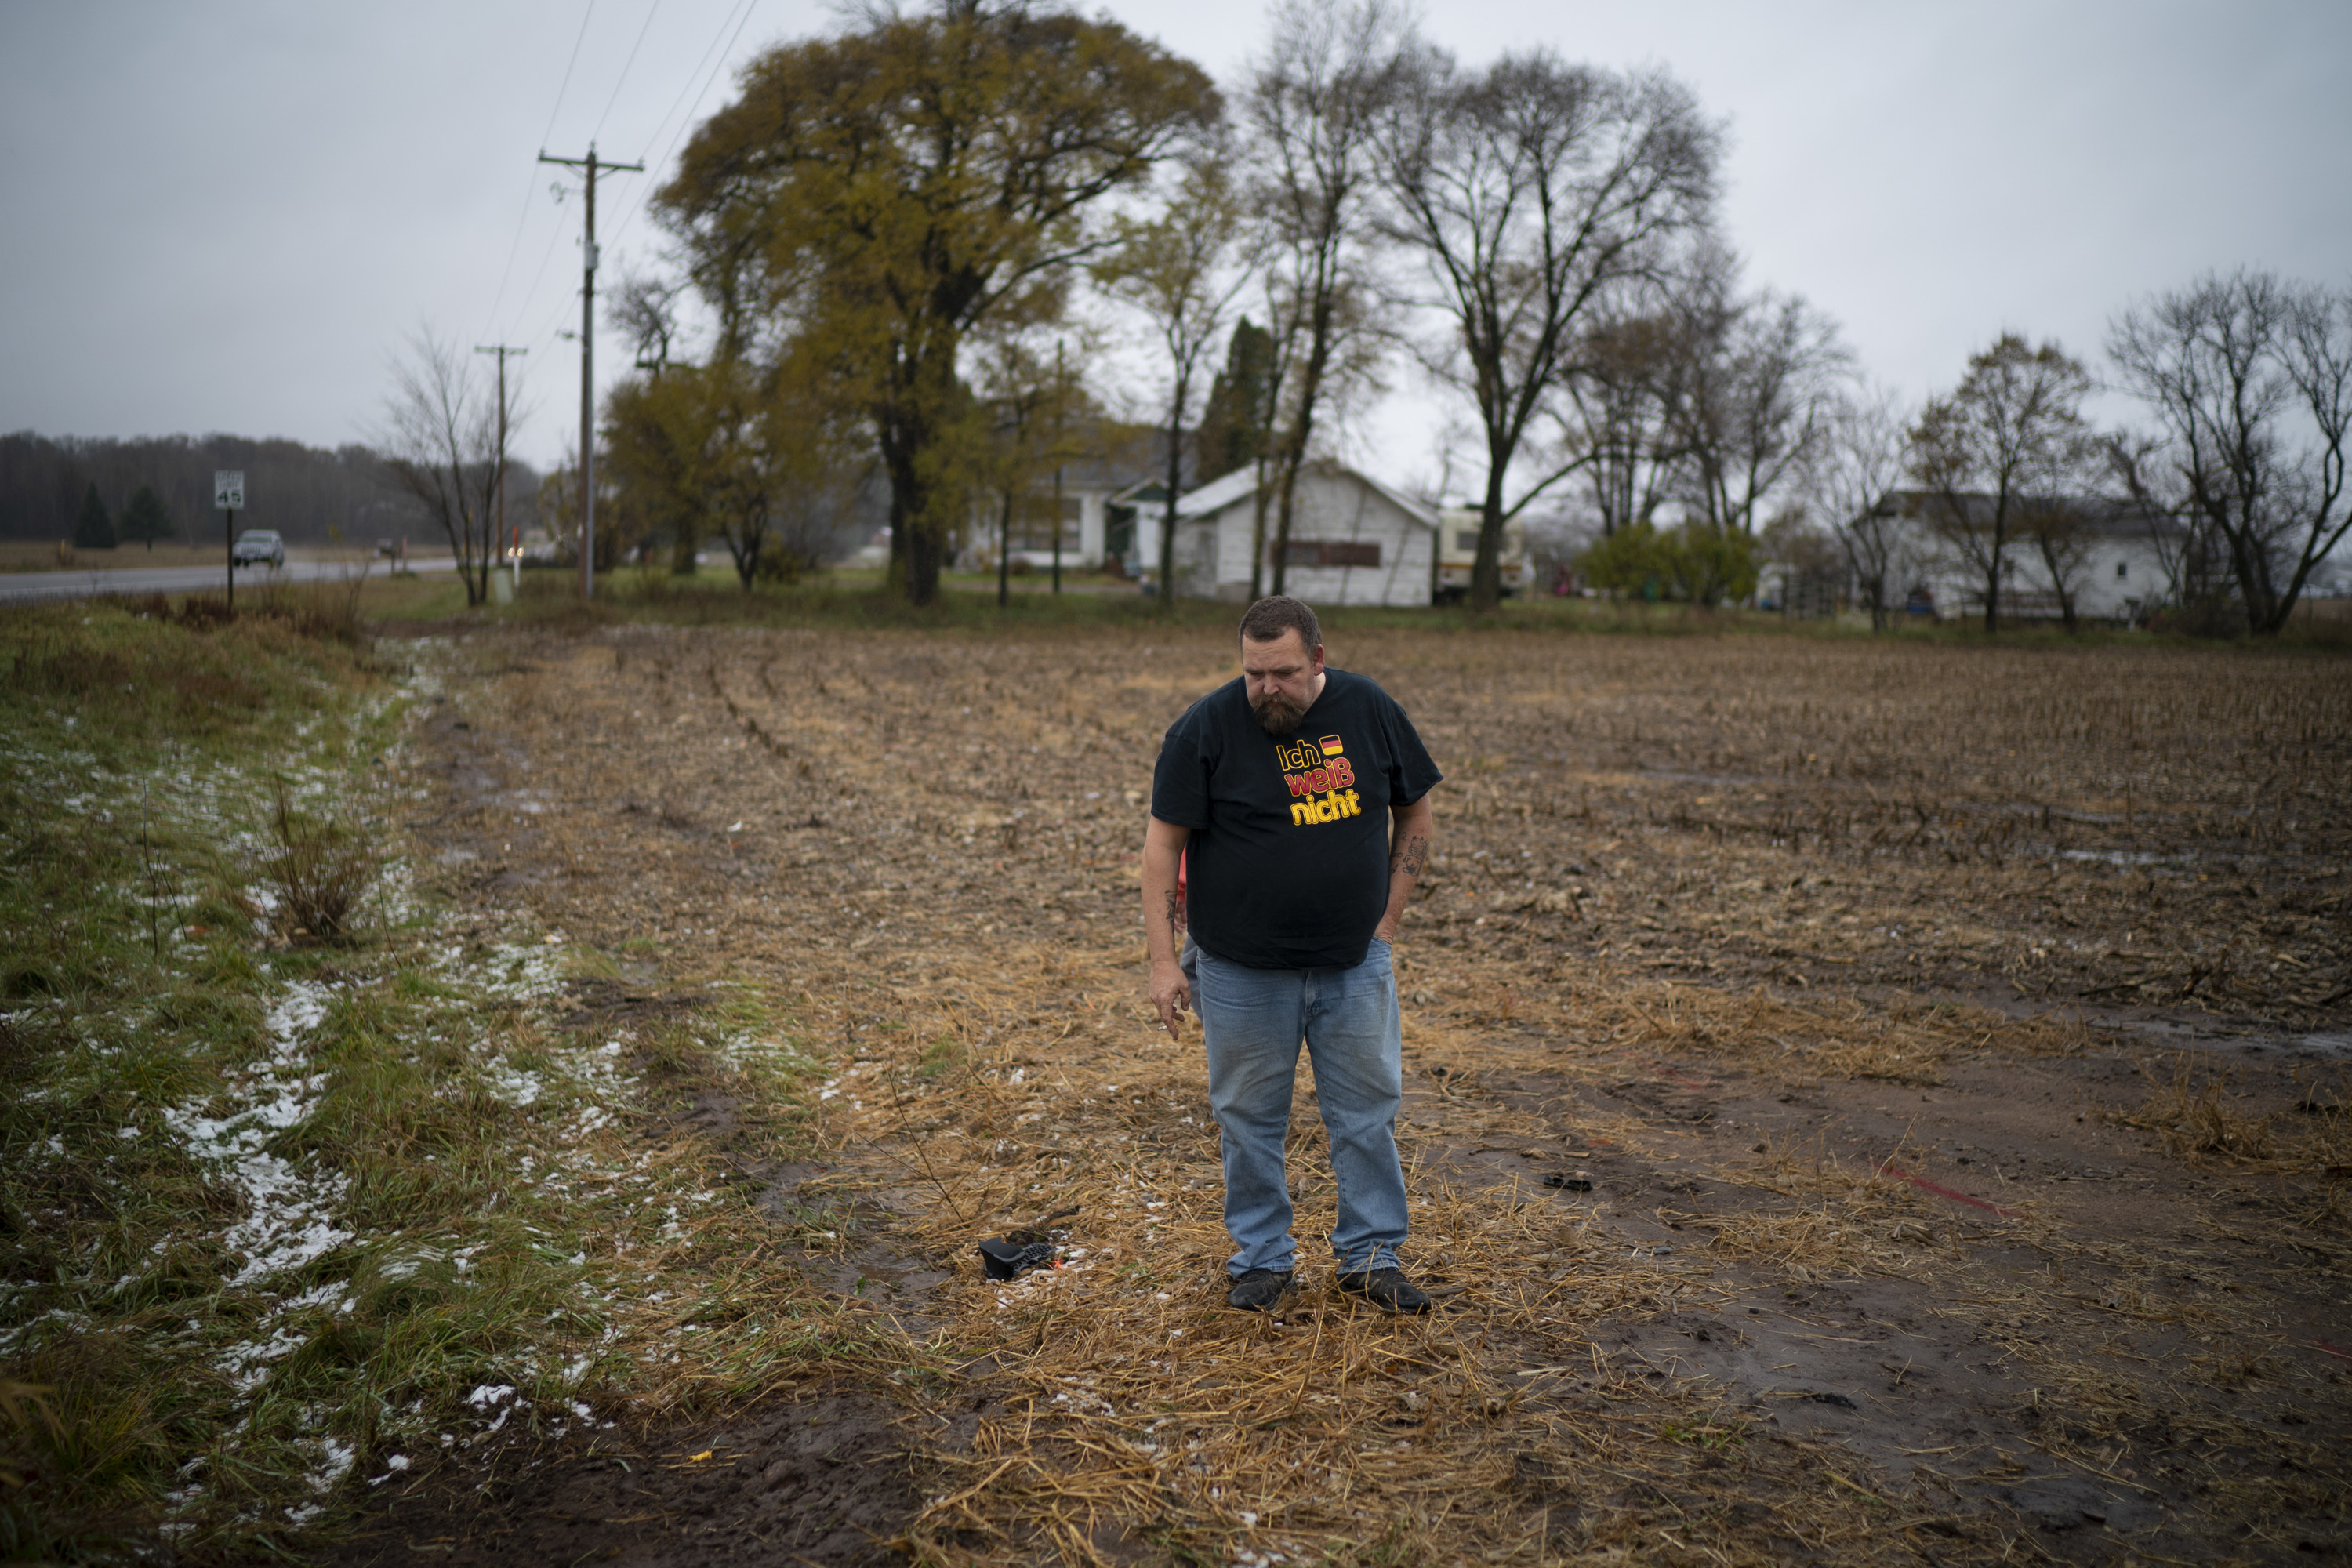 A relative of the adult victim struck and killed by a vehicle Saturday looks at the path he thought the truck took when it veered off Wisconsin County Hwy. P, Sunday, Nov. 4, 2018. The western Wisconsin community is grieving the deaths of three Girl Scouts and an adult who were collecting trash along a rural highway when police say a pickup truck veered off the road and hit them before speeding away. (Jeff Wheeler/Star Tribune via AP)